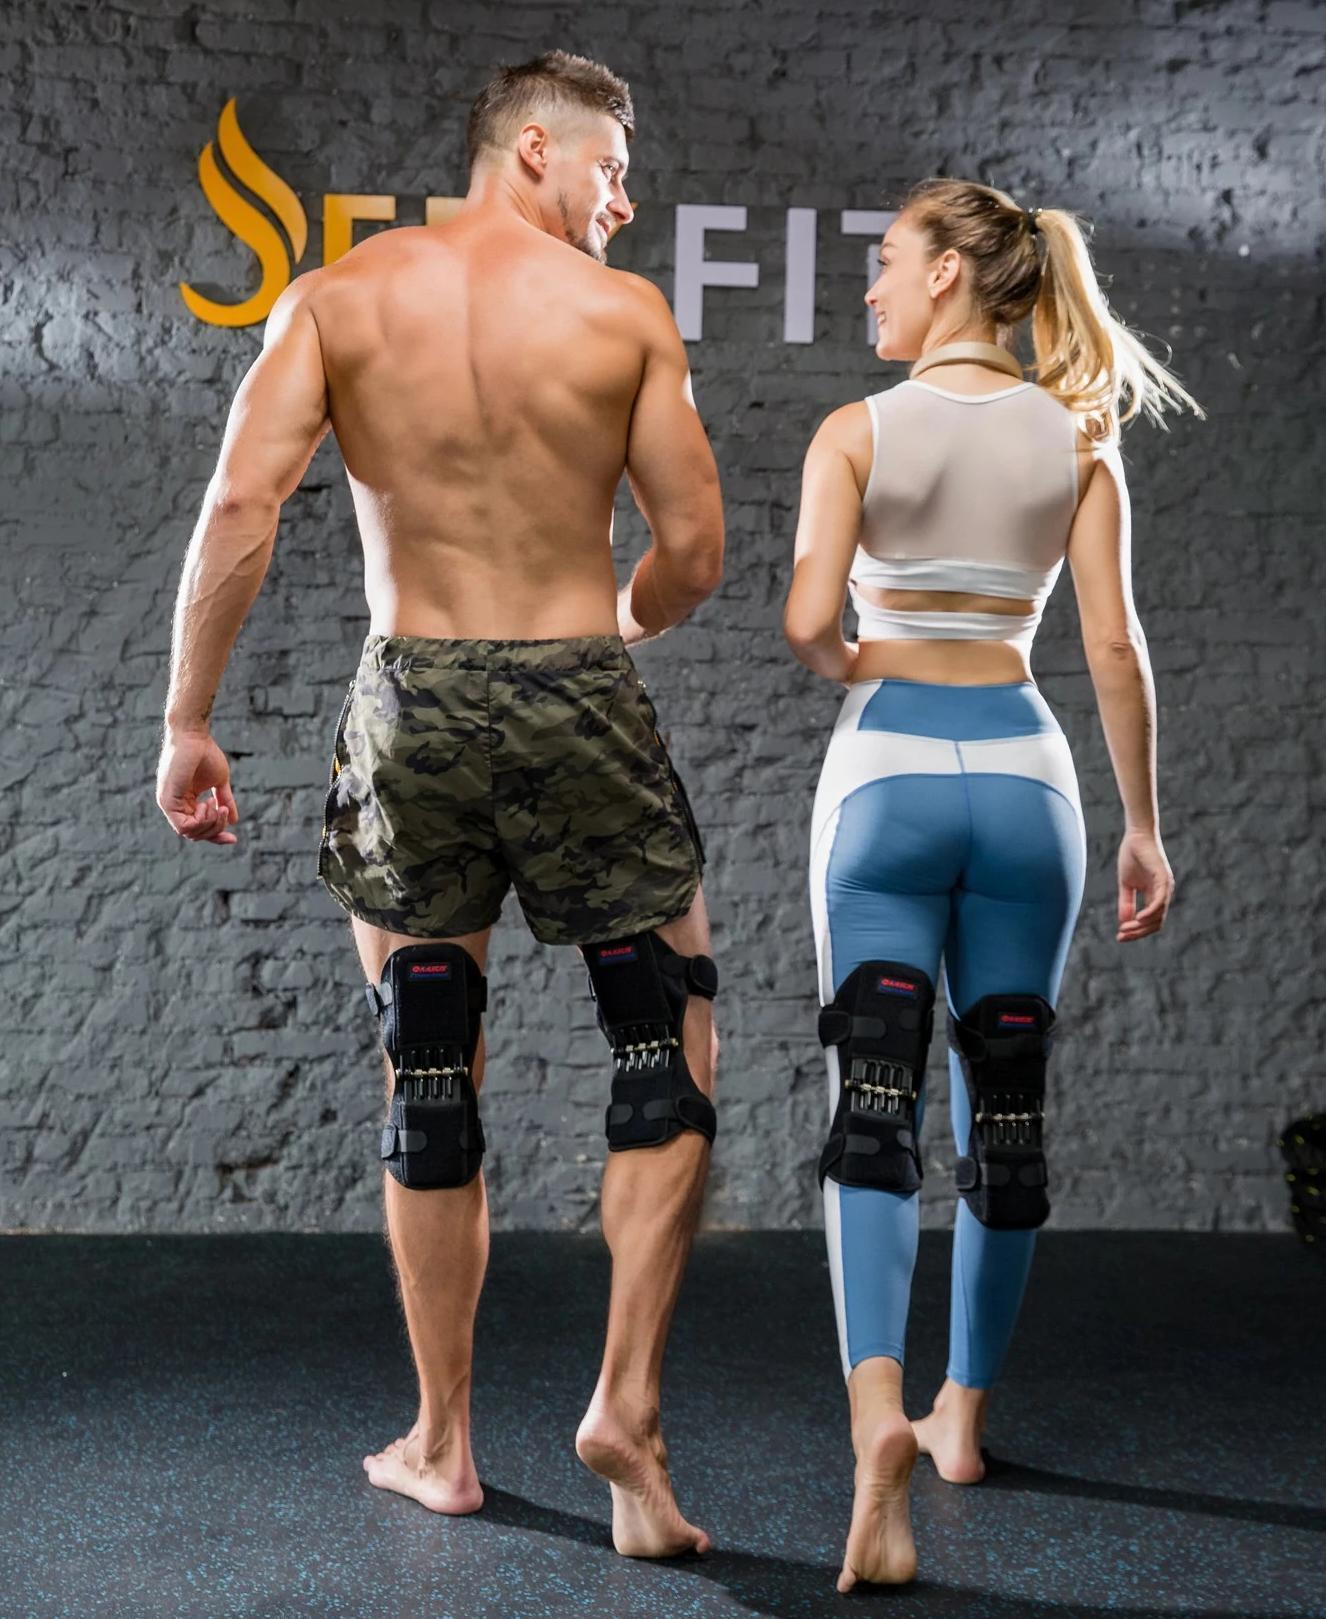 knee pad Hinged knee brace and power joint support joint support